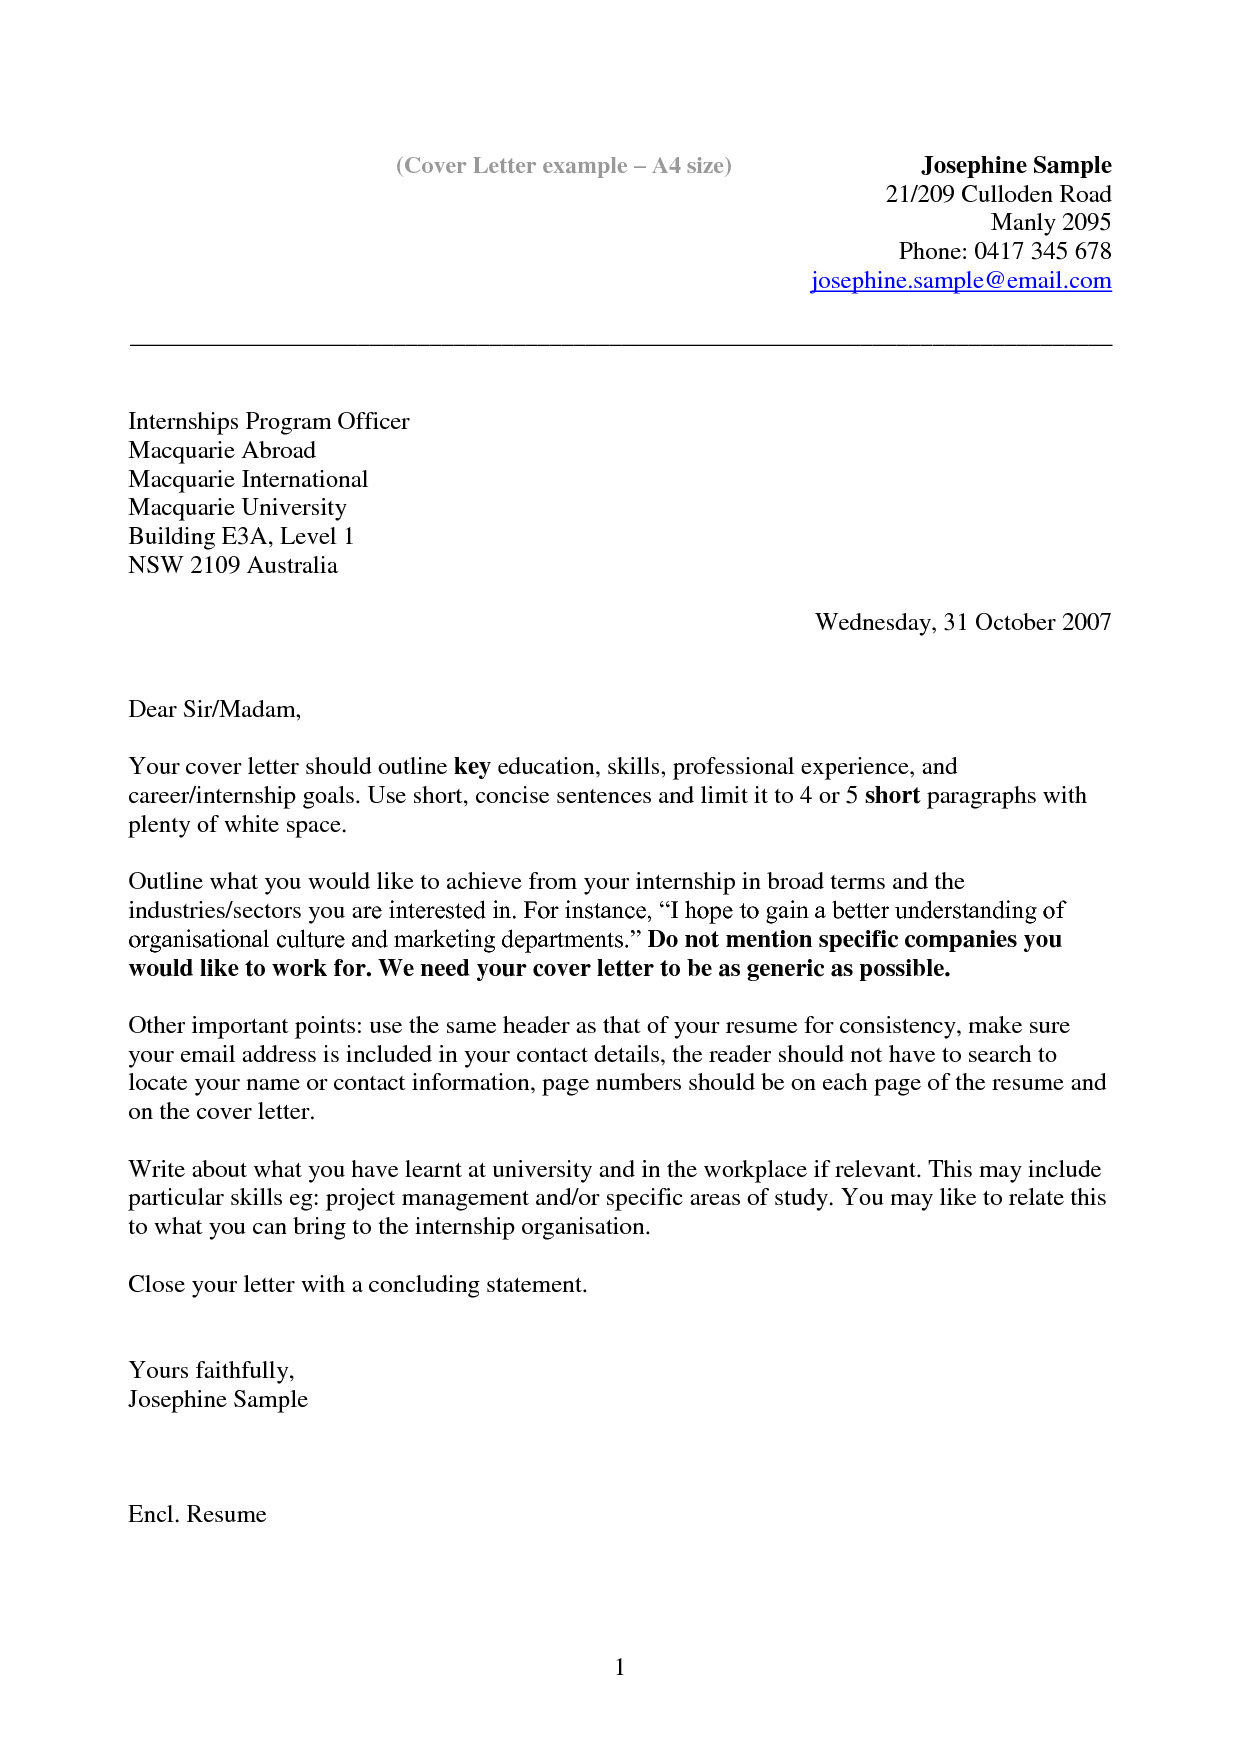 Resume Cover Letter Sample Best Templatecover Letter Samples For  Resume Cover Letters Samples